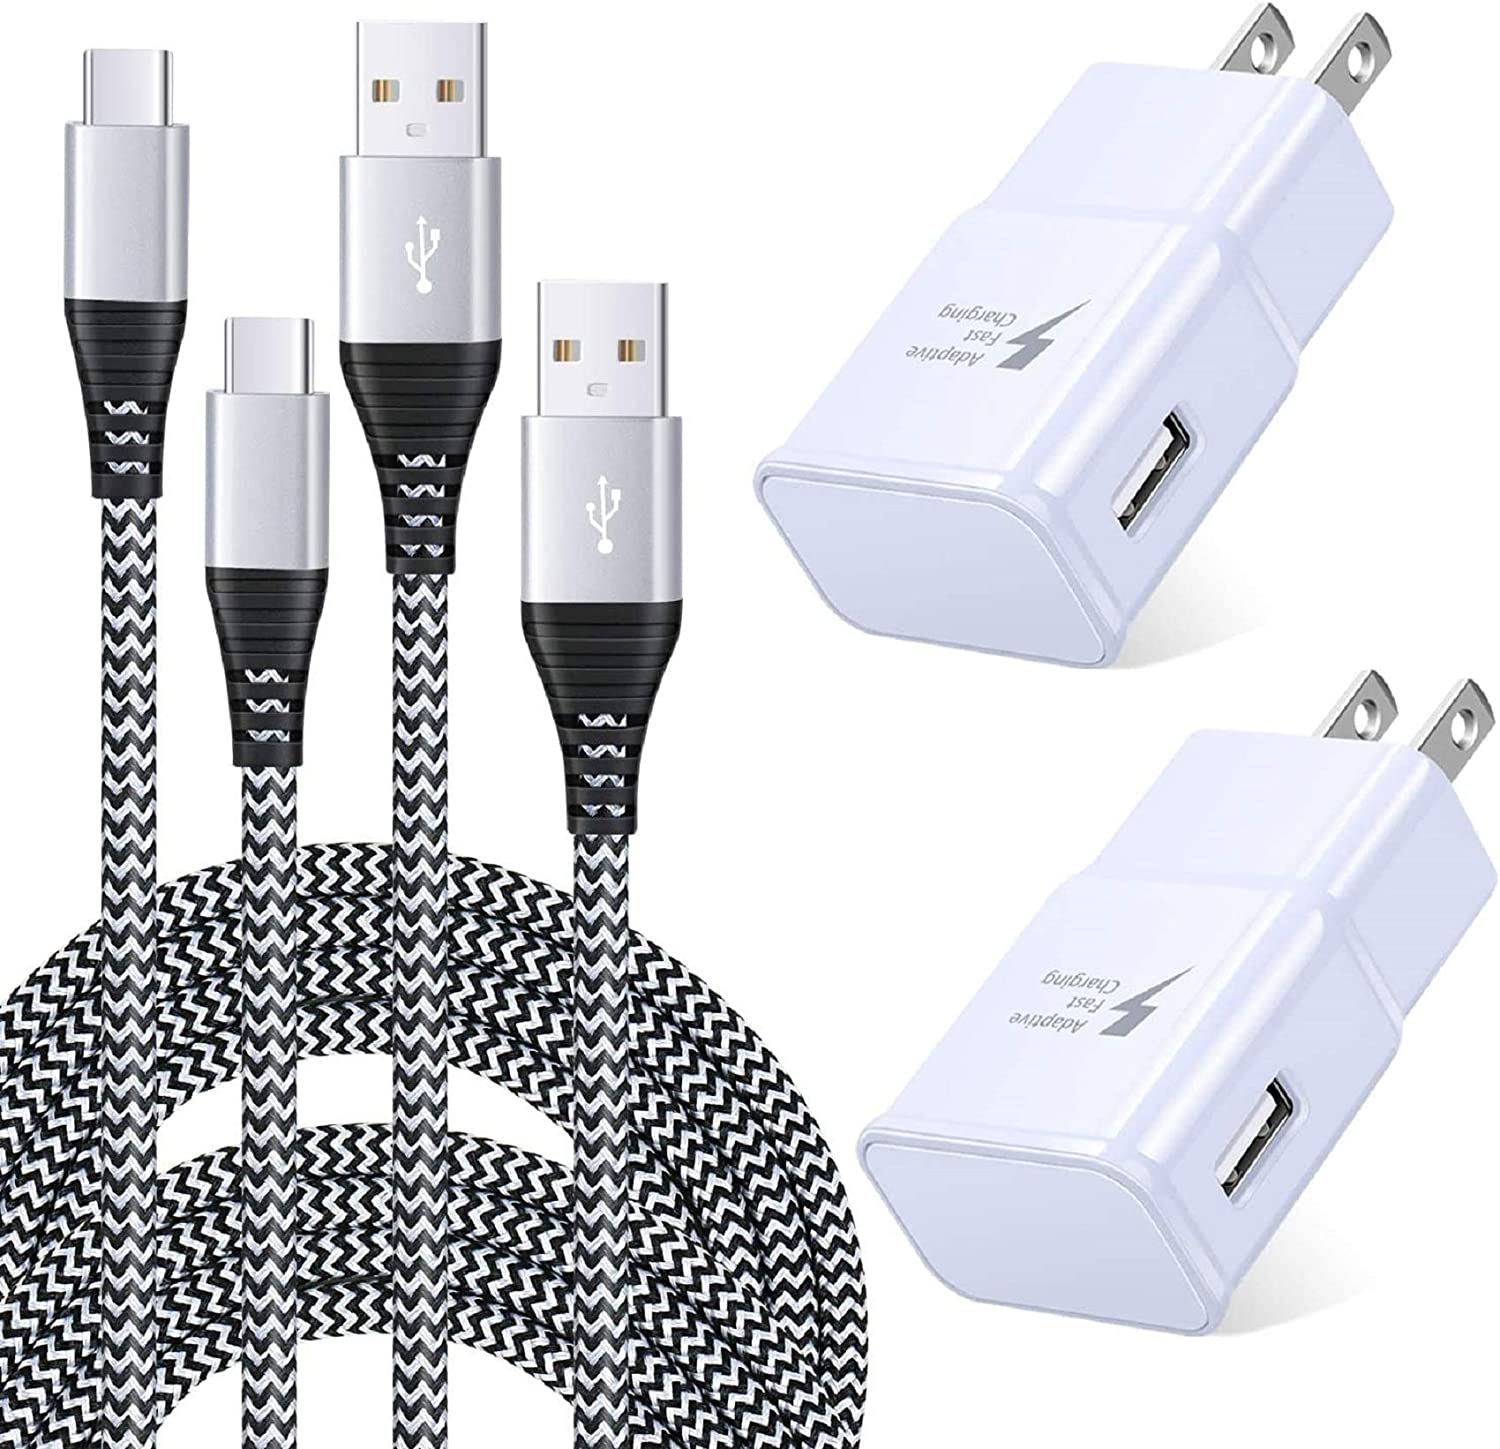 Adaptive Fast Charger Kit Set with USB Type C Cable 6ft, Qihop 2 Pack USB C Fast Charger Type C Charger Compatible with Samsung Galaxy S10/S10+/S10e/S9/S9 Plus/S8/S8+,Note 8/9,LG,HTC and More